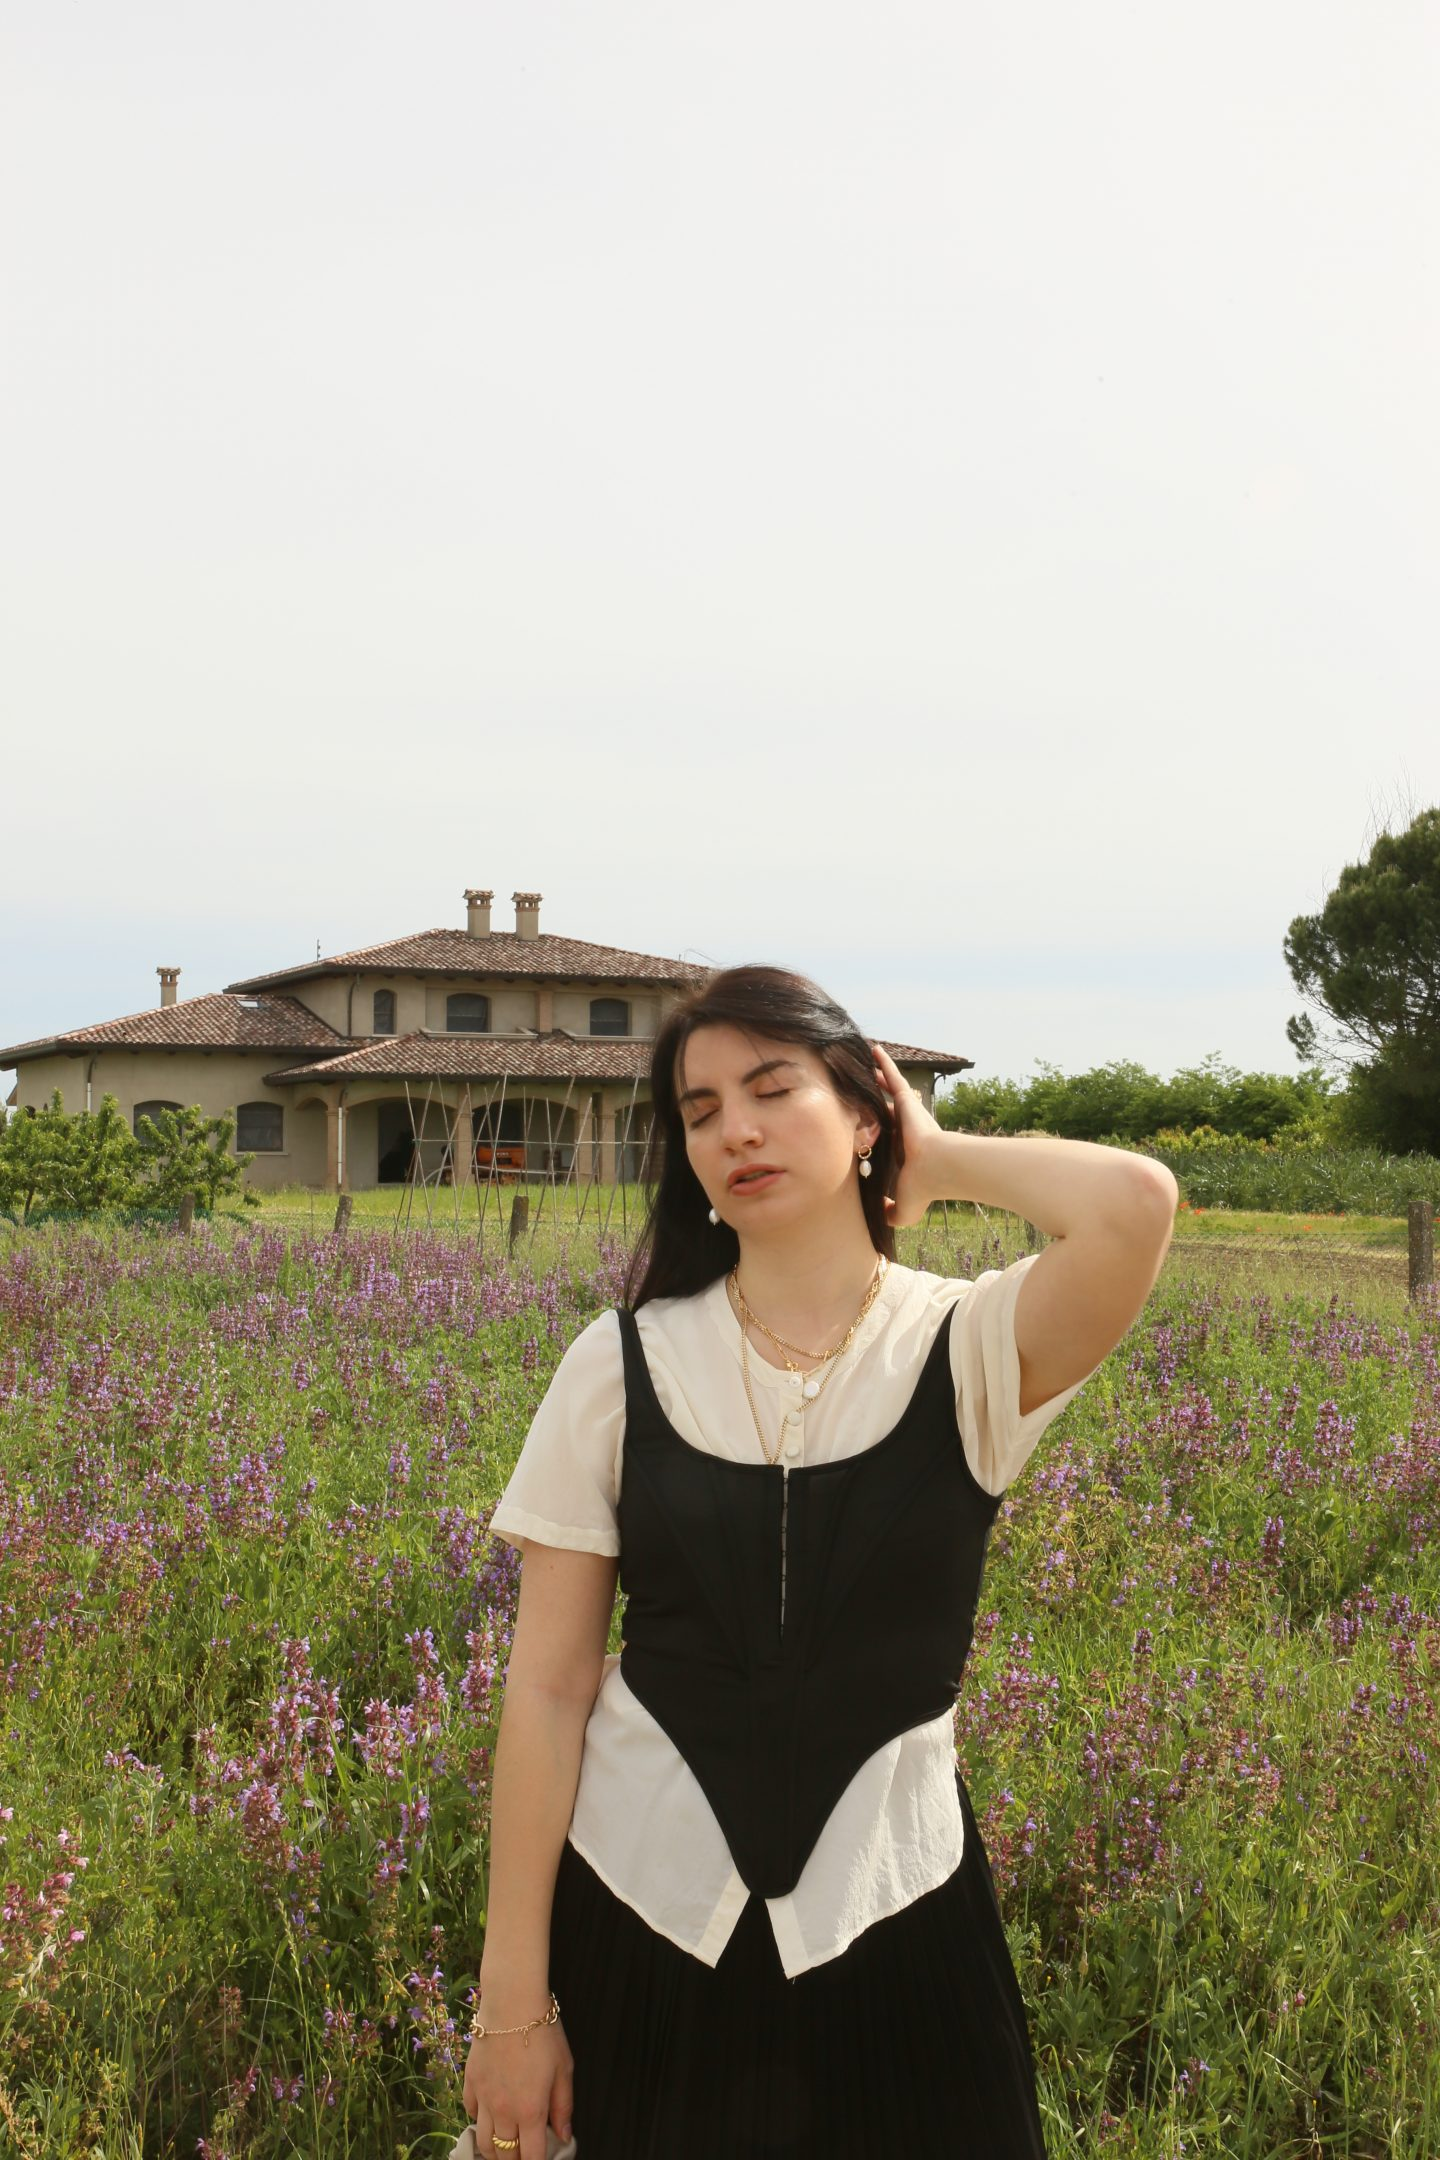 How to get a Romantic Countryside Vibe in your Photos